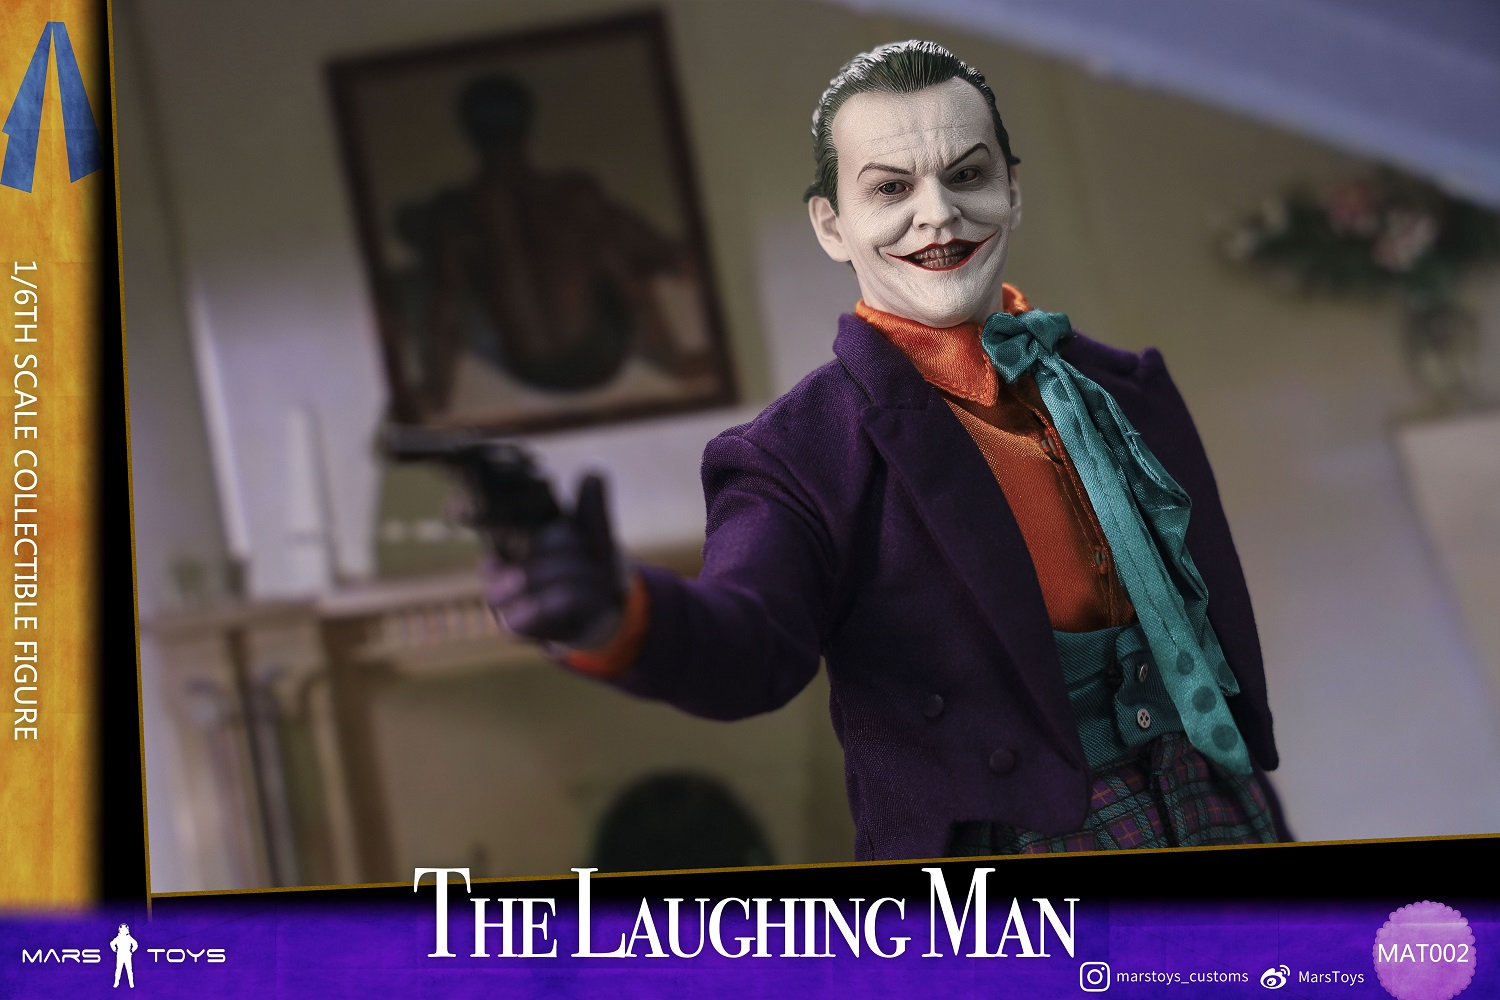 BATMAN 1989 JOKER THE LAUGHING MAN JACK NICHOLSON 1/6 SCALE FIGURE 7